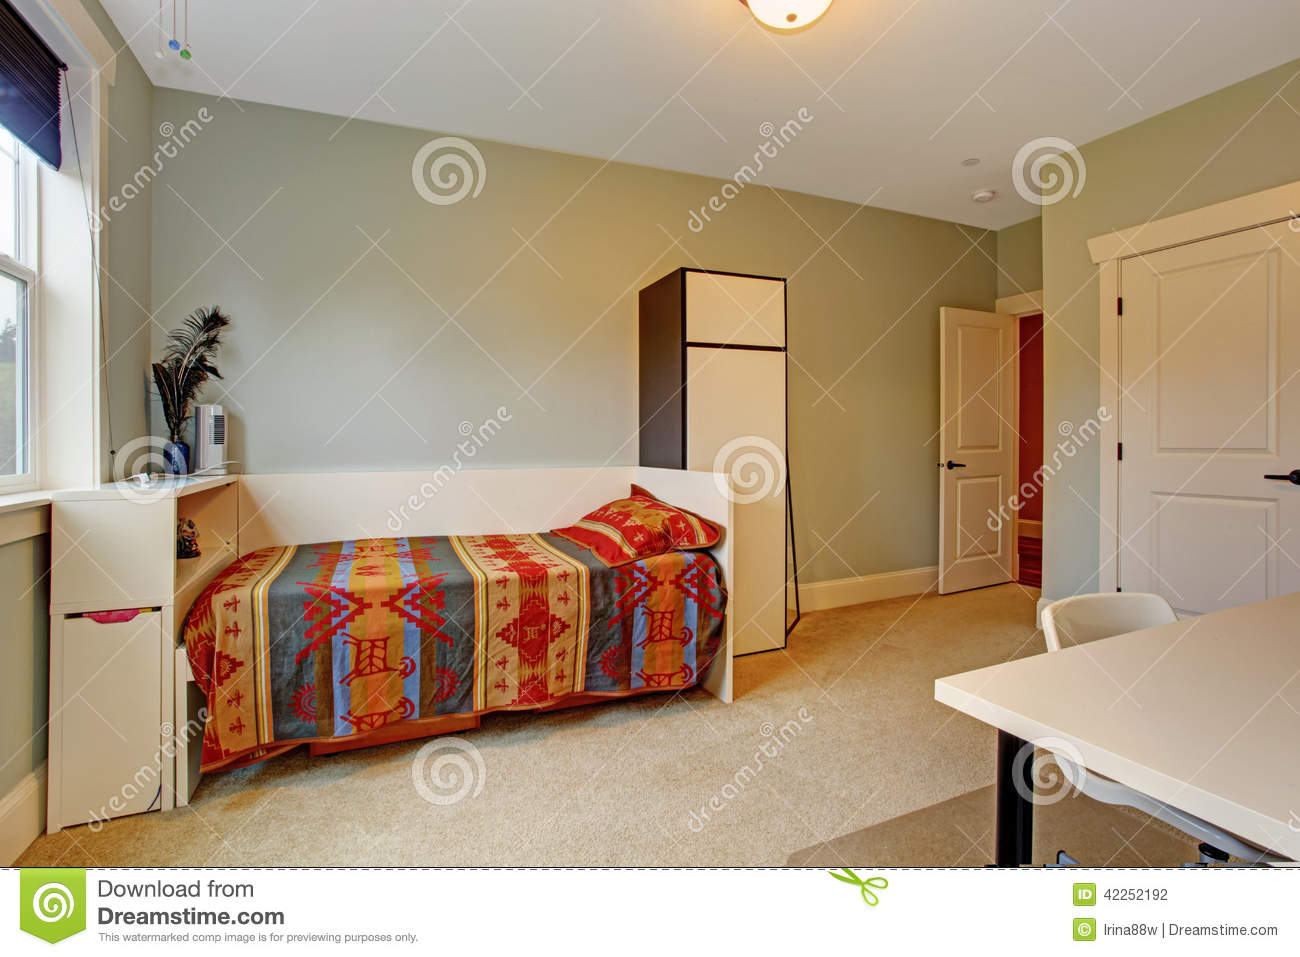 Simple bedroom interior with single bed stock photo for Simple bedroom interior